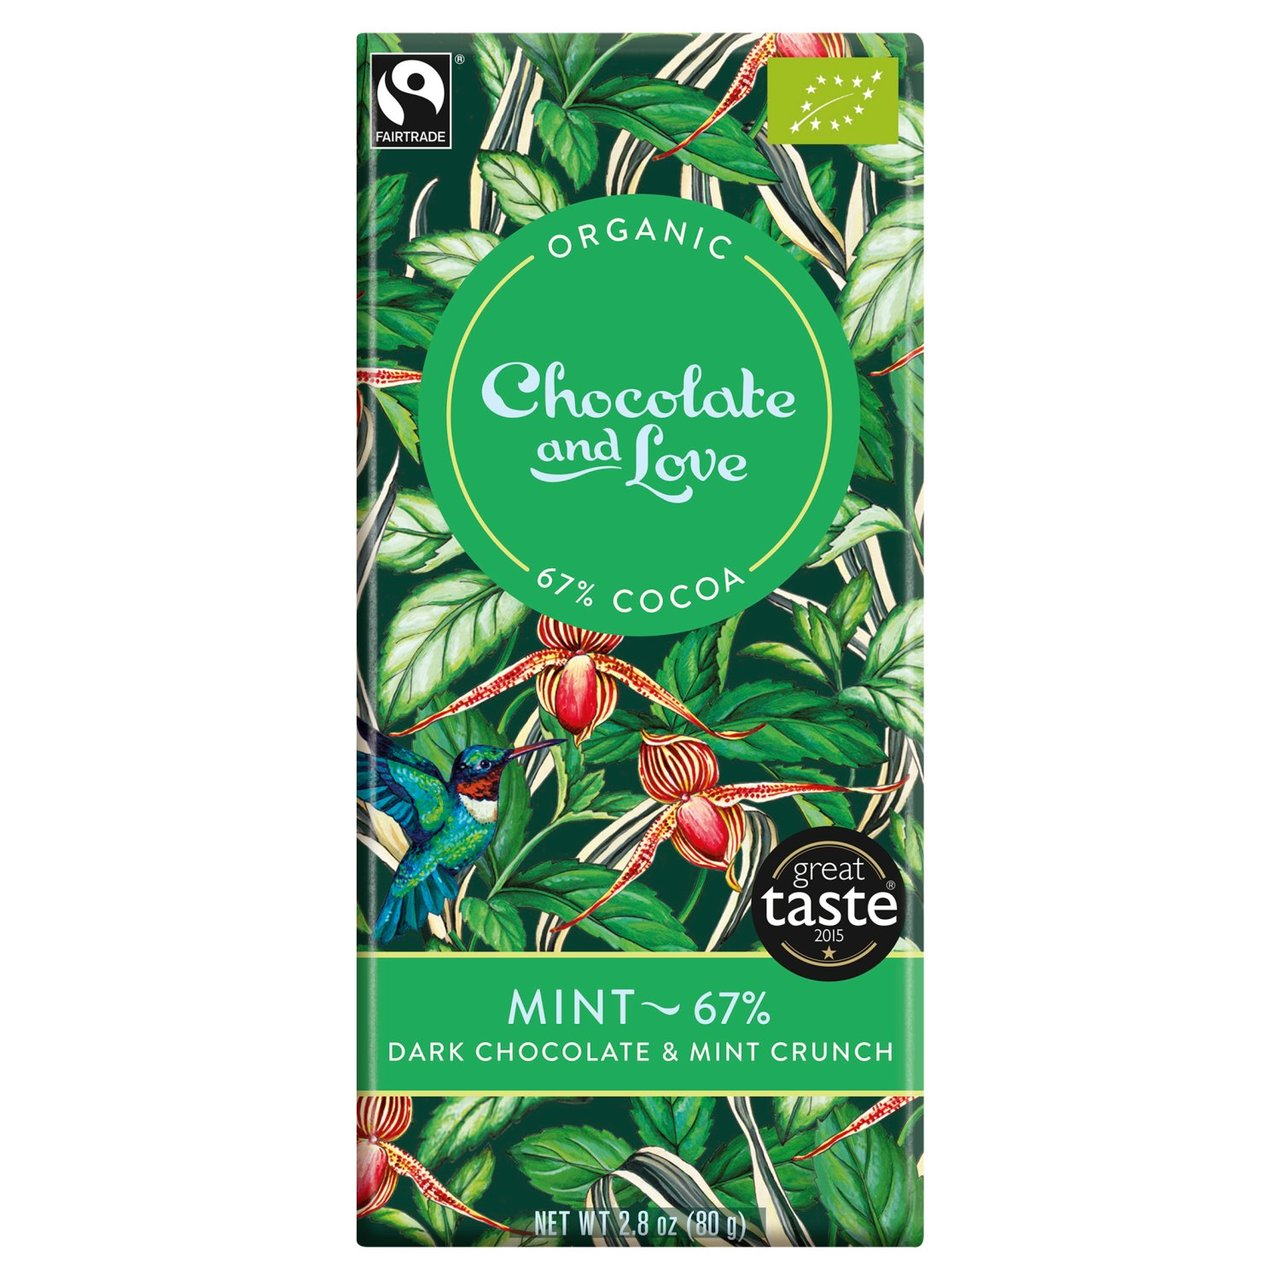 Mint Chocolate & Love Organic Fairtrade Chocolate Bar